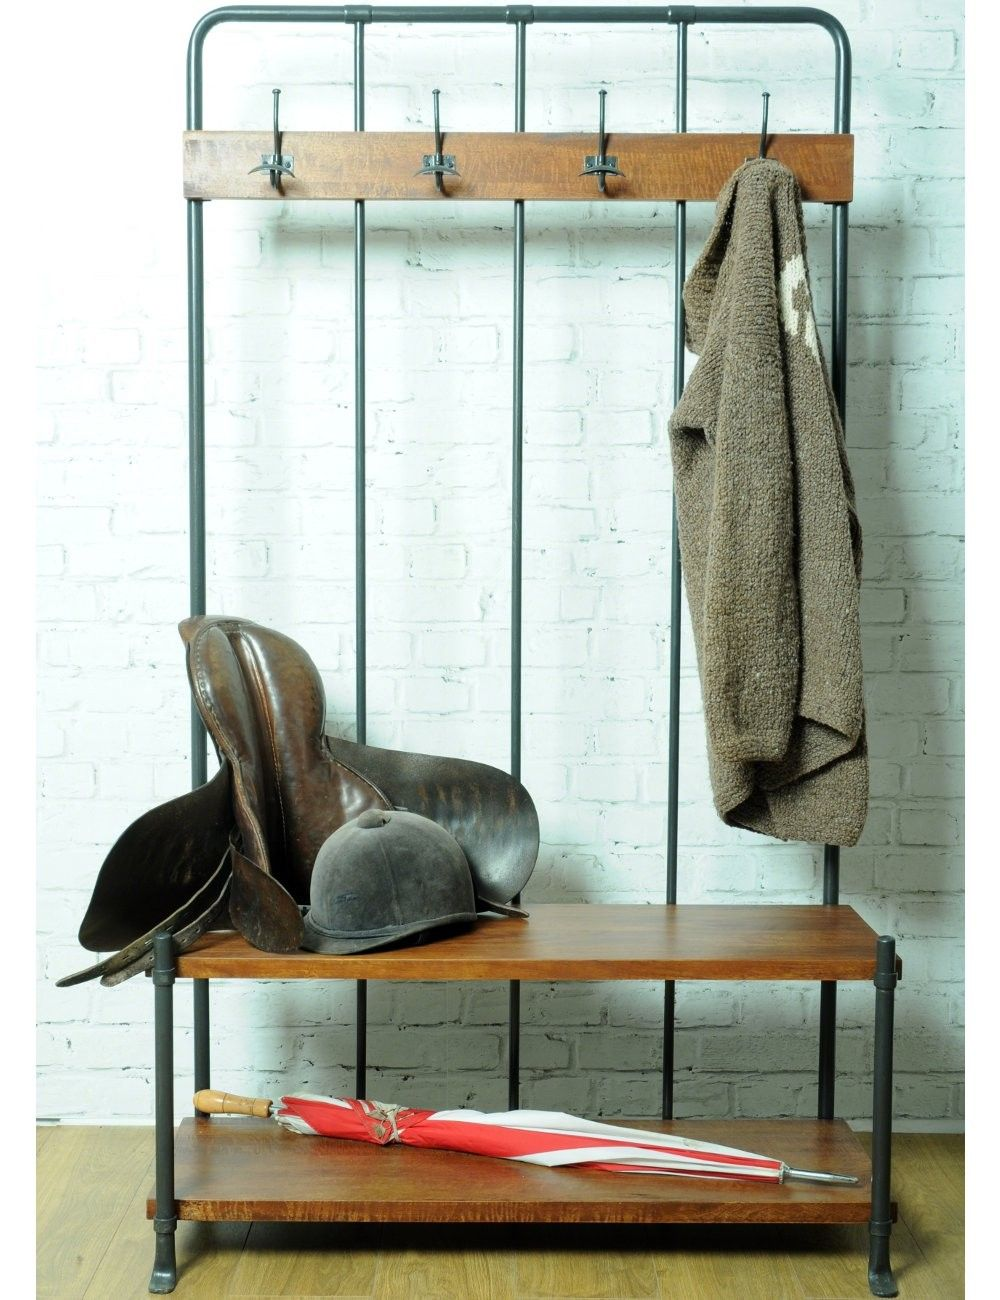 Reclaimed Hall Bench Coat Rack At Rose Grey You Could Make A Version Of This Using Copper Plumbing Ings Also